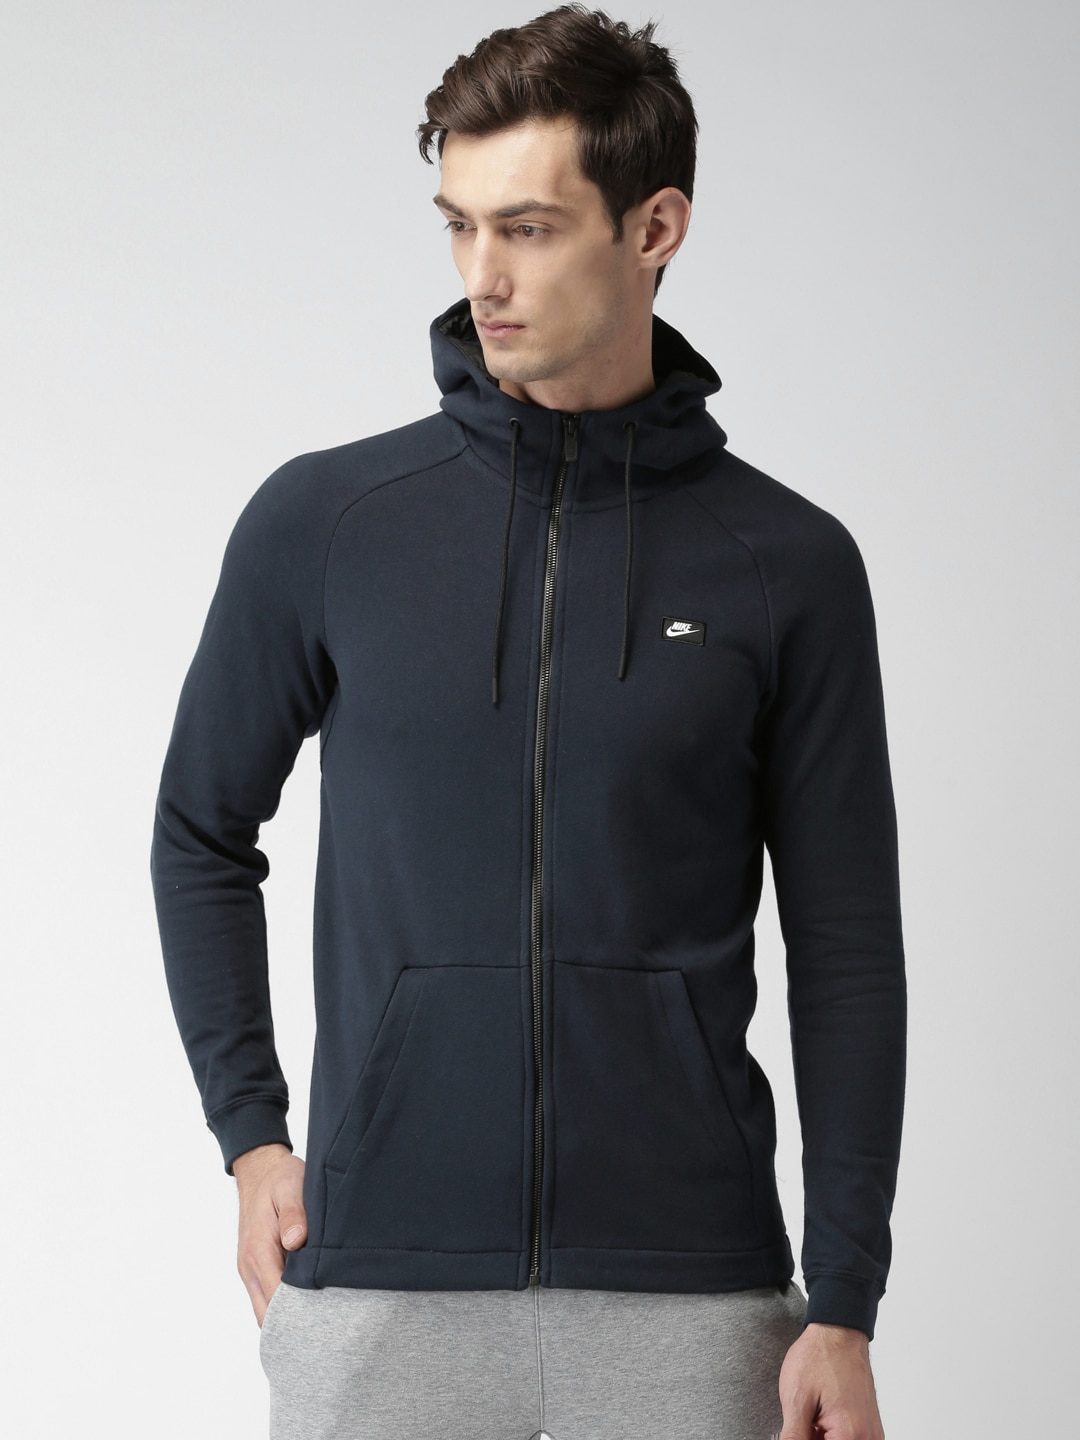 4123065a4340 Nike Hood Men Sweatshirts - Buy Nike Hood Men Sweatshirts online in India